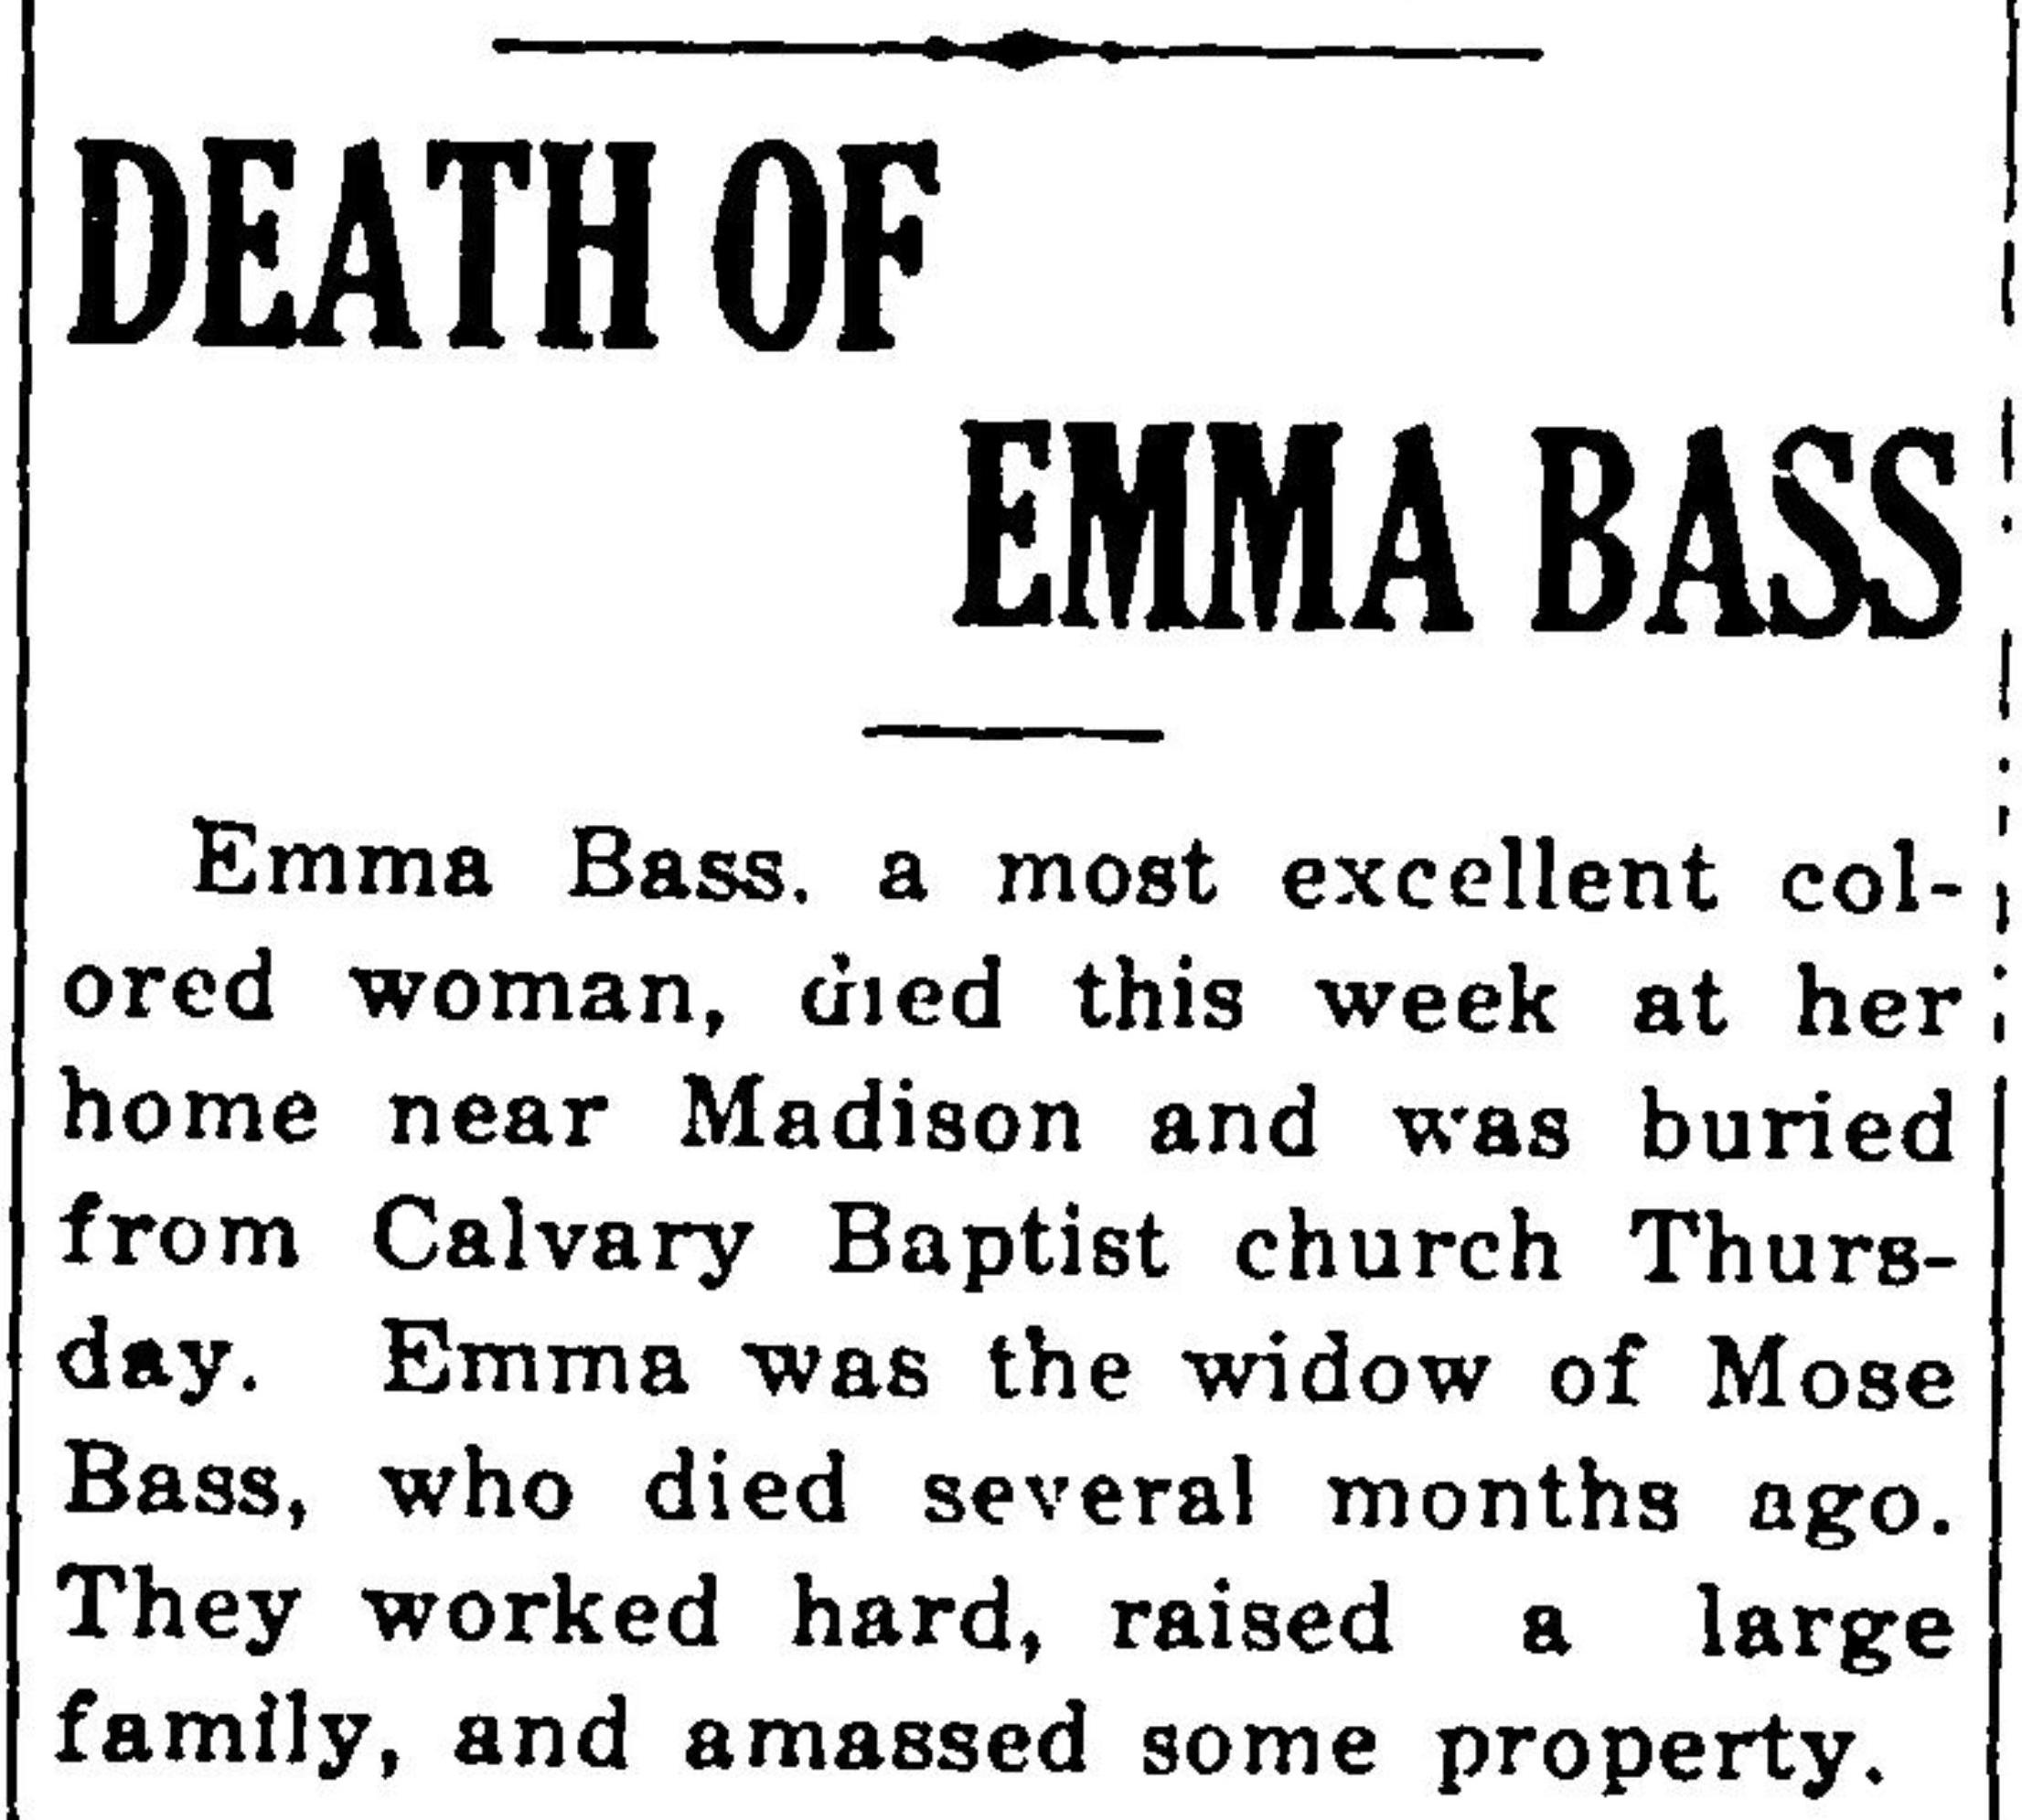 bass_emmaharris_1921-obituary.jpeg